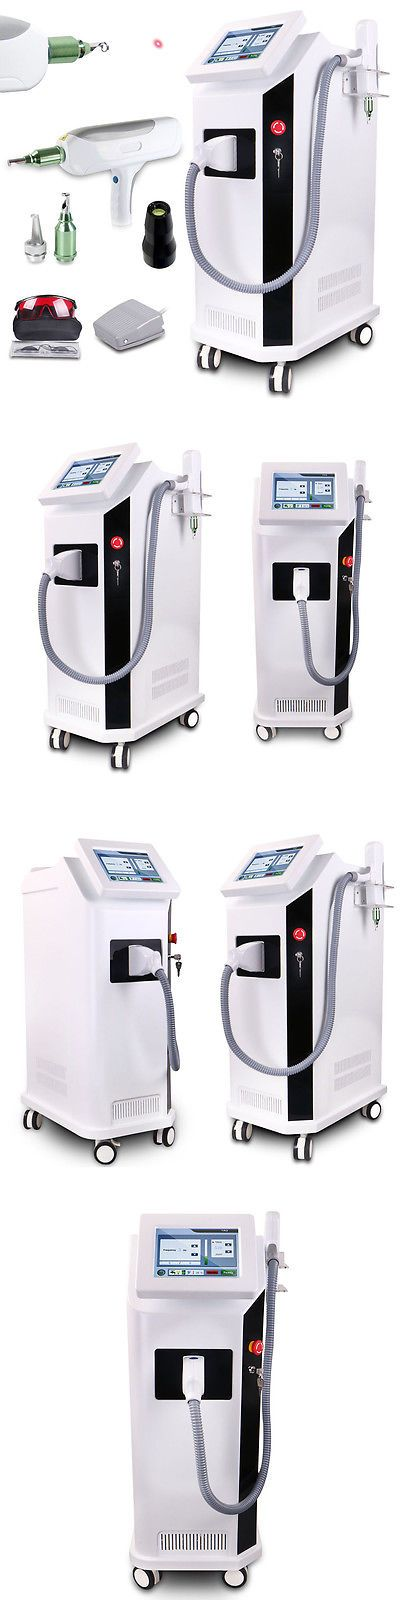 Tattoo Removal Machines: Q-Switch Nd Yag Laser Tattoo Removal 1064And532nm Freckle Eyebrow Pigment Remover BUY IT NOW ONLY: $2279.0